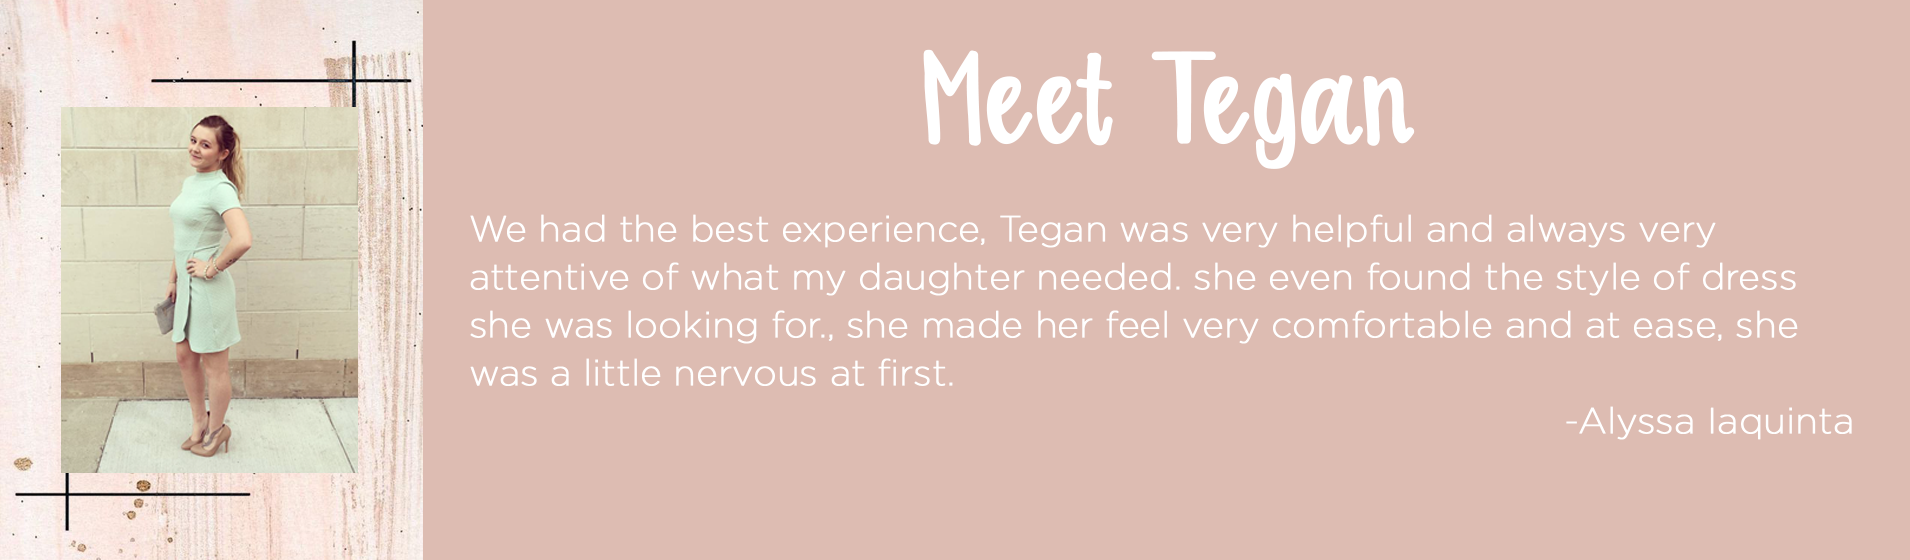 Review_Tegan.png